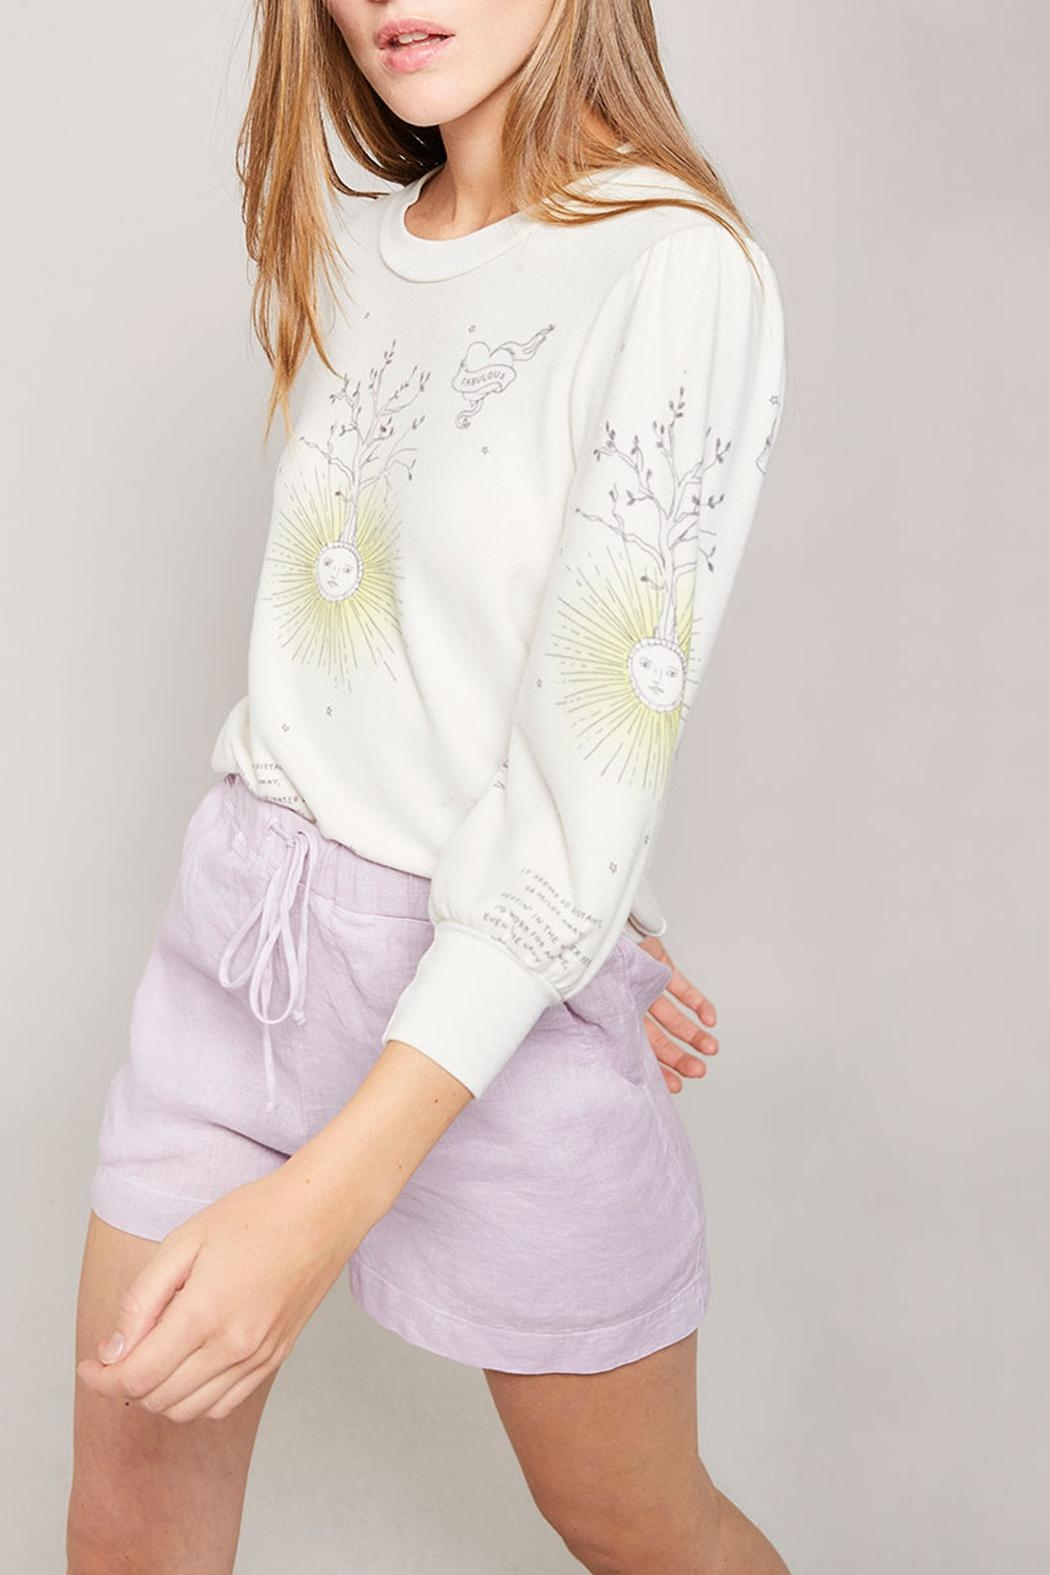 All Things Fabulous Catalina Spring Top - Side Cropped Image